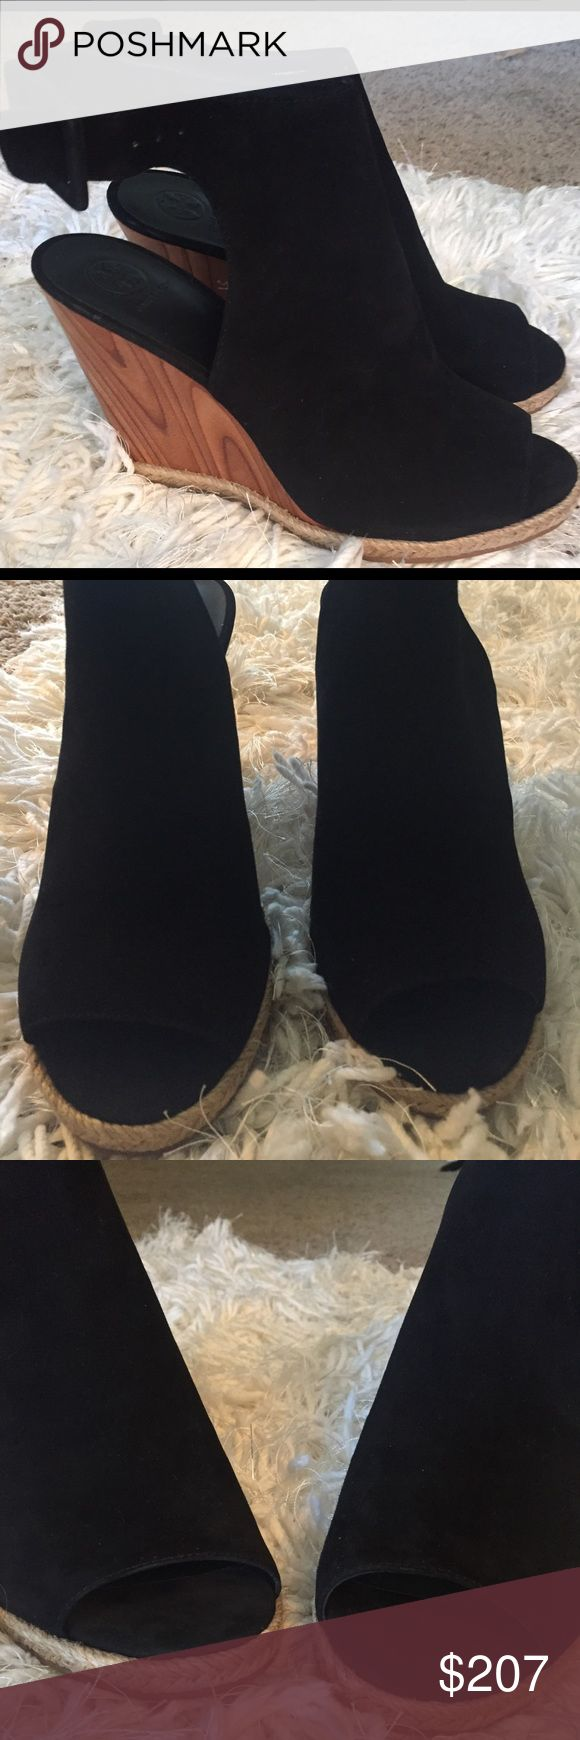 PRICE REDUCTION!! NEW TORY BURCH BOOTIES!! Black suede TORY BURCH peep toe booties with rubber sole for extra comfort. Soooo cute!! Tory Burch Shoes Ankle Boots & Booties